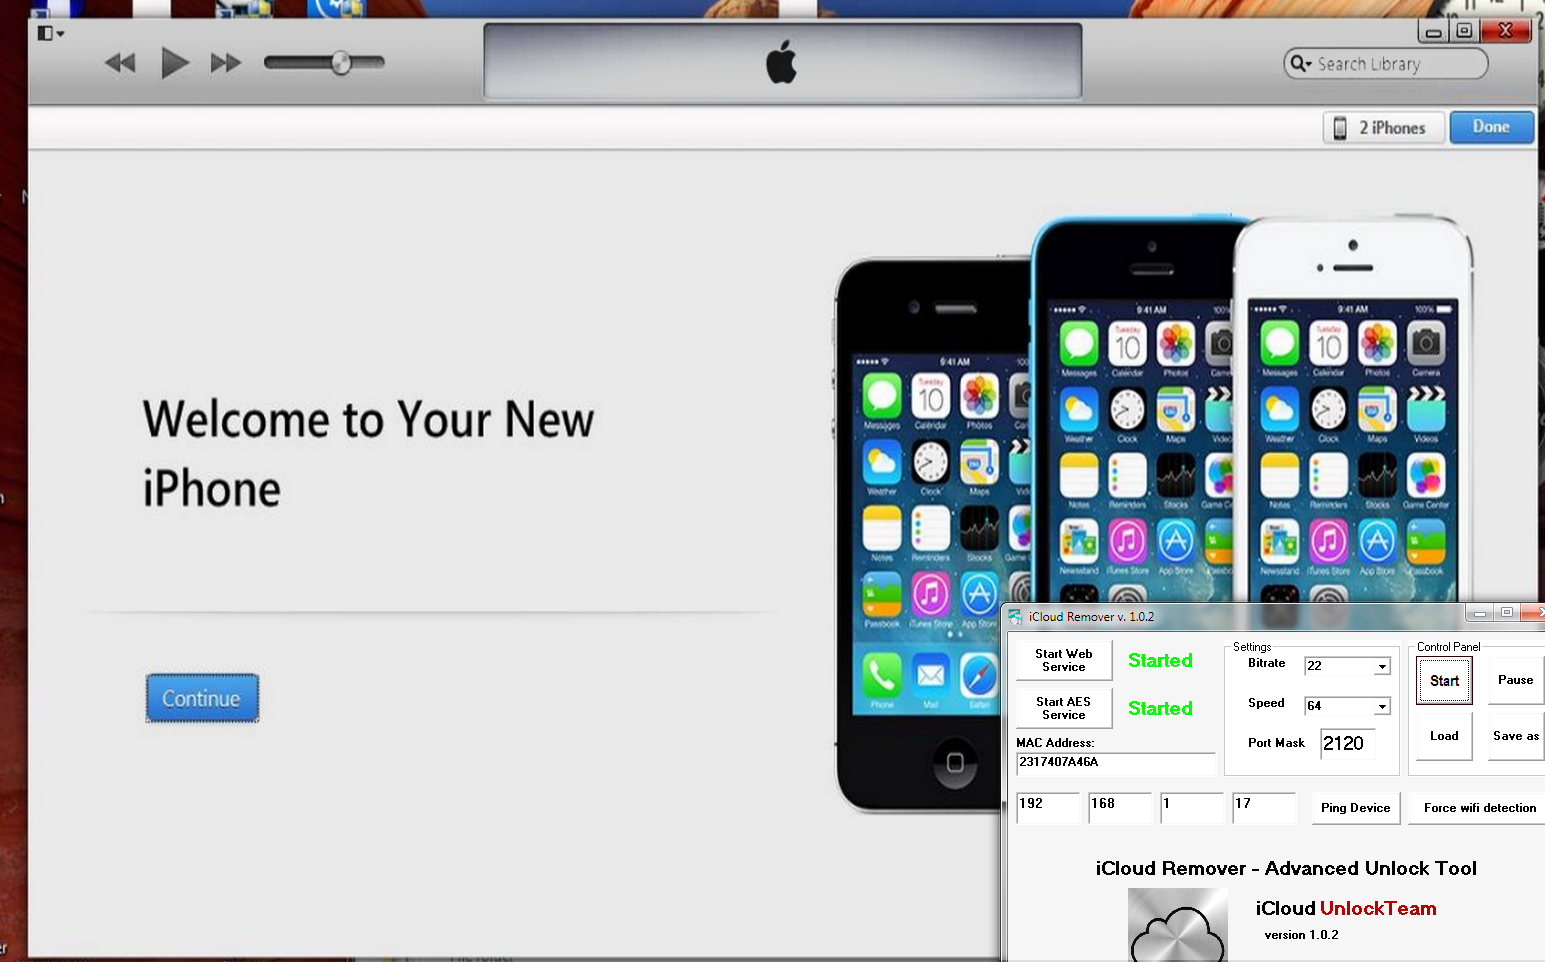 Icloud info and removal, network unlocks through apple GSX ...